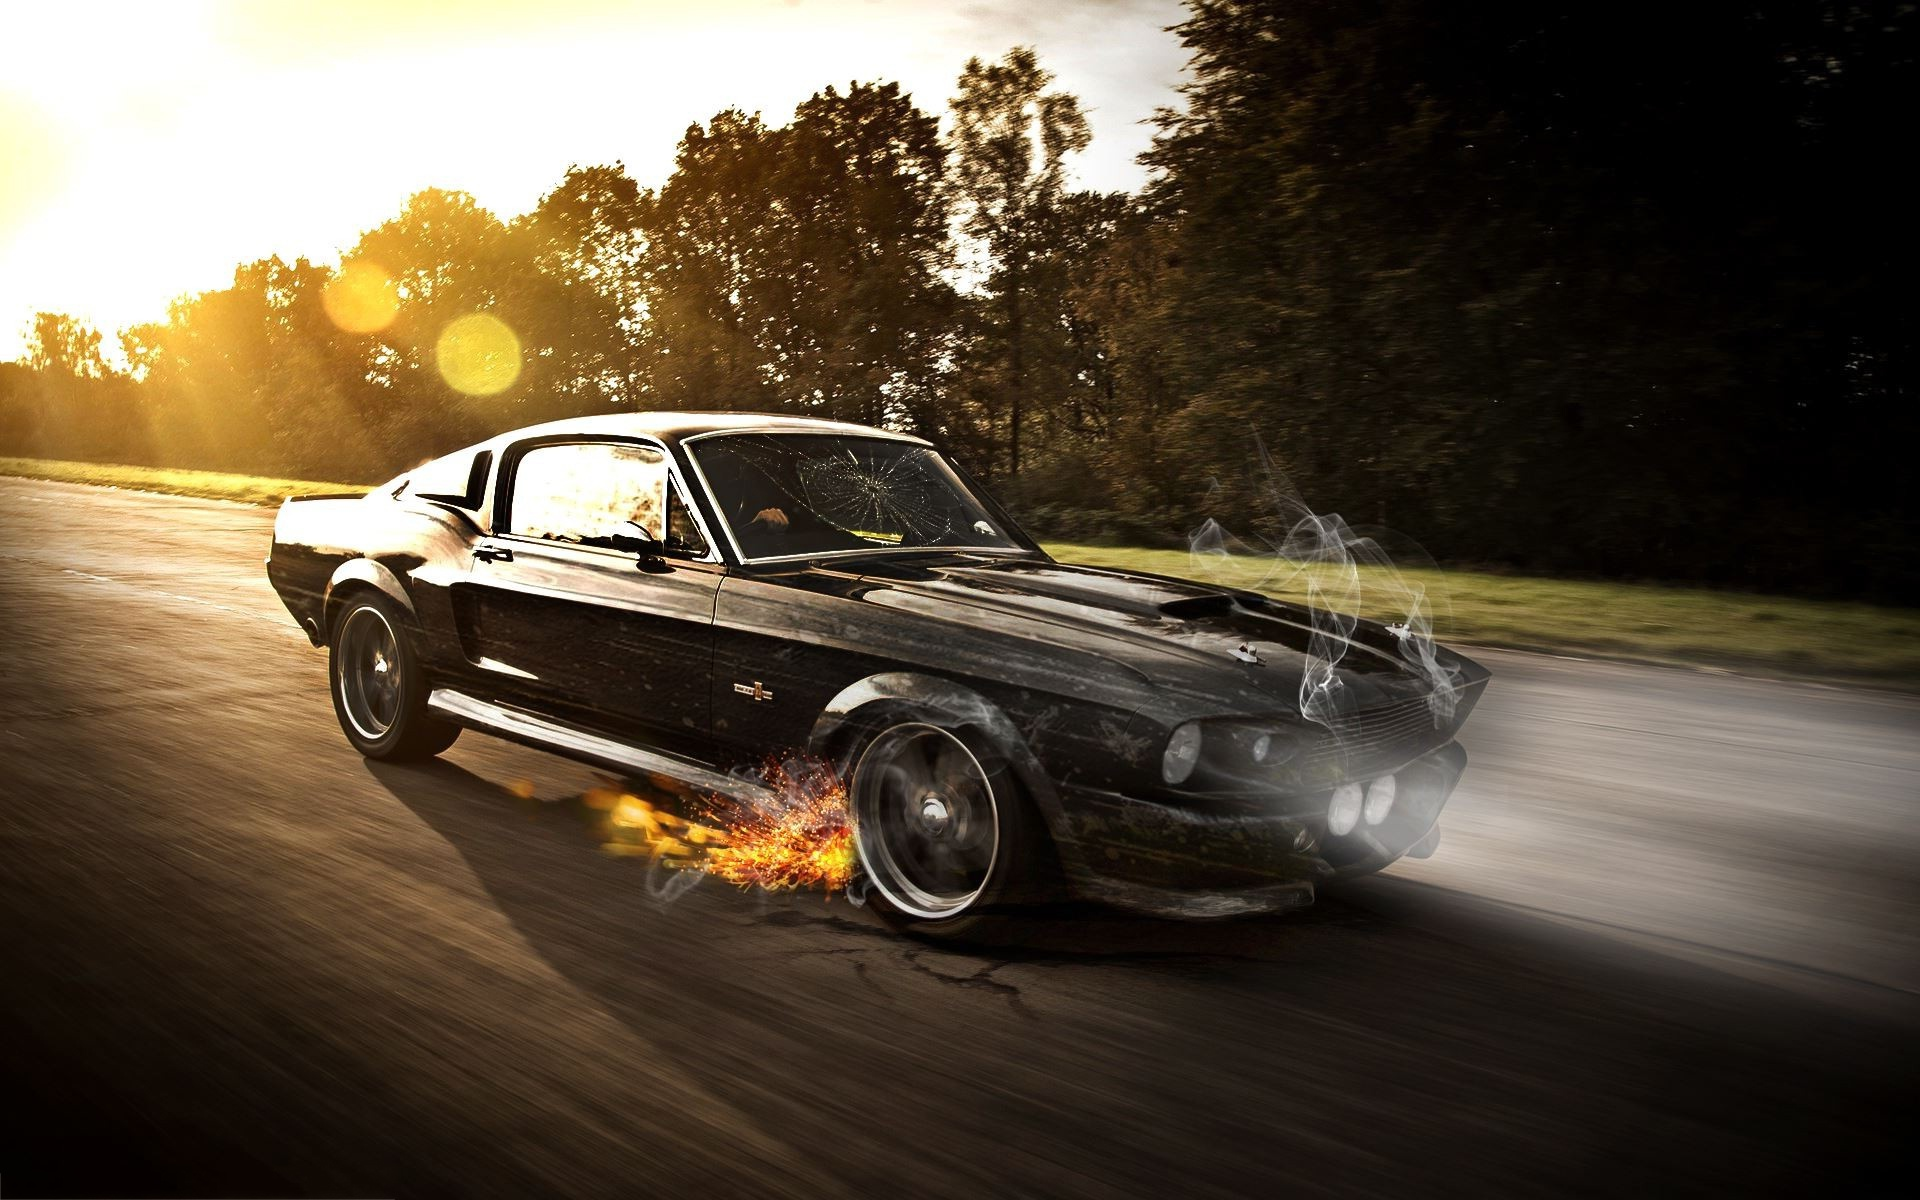 4k Car Wallpaper Mustang 1960 Mustang Shelby Wallpaper Photoshop 1253 Wallpaper